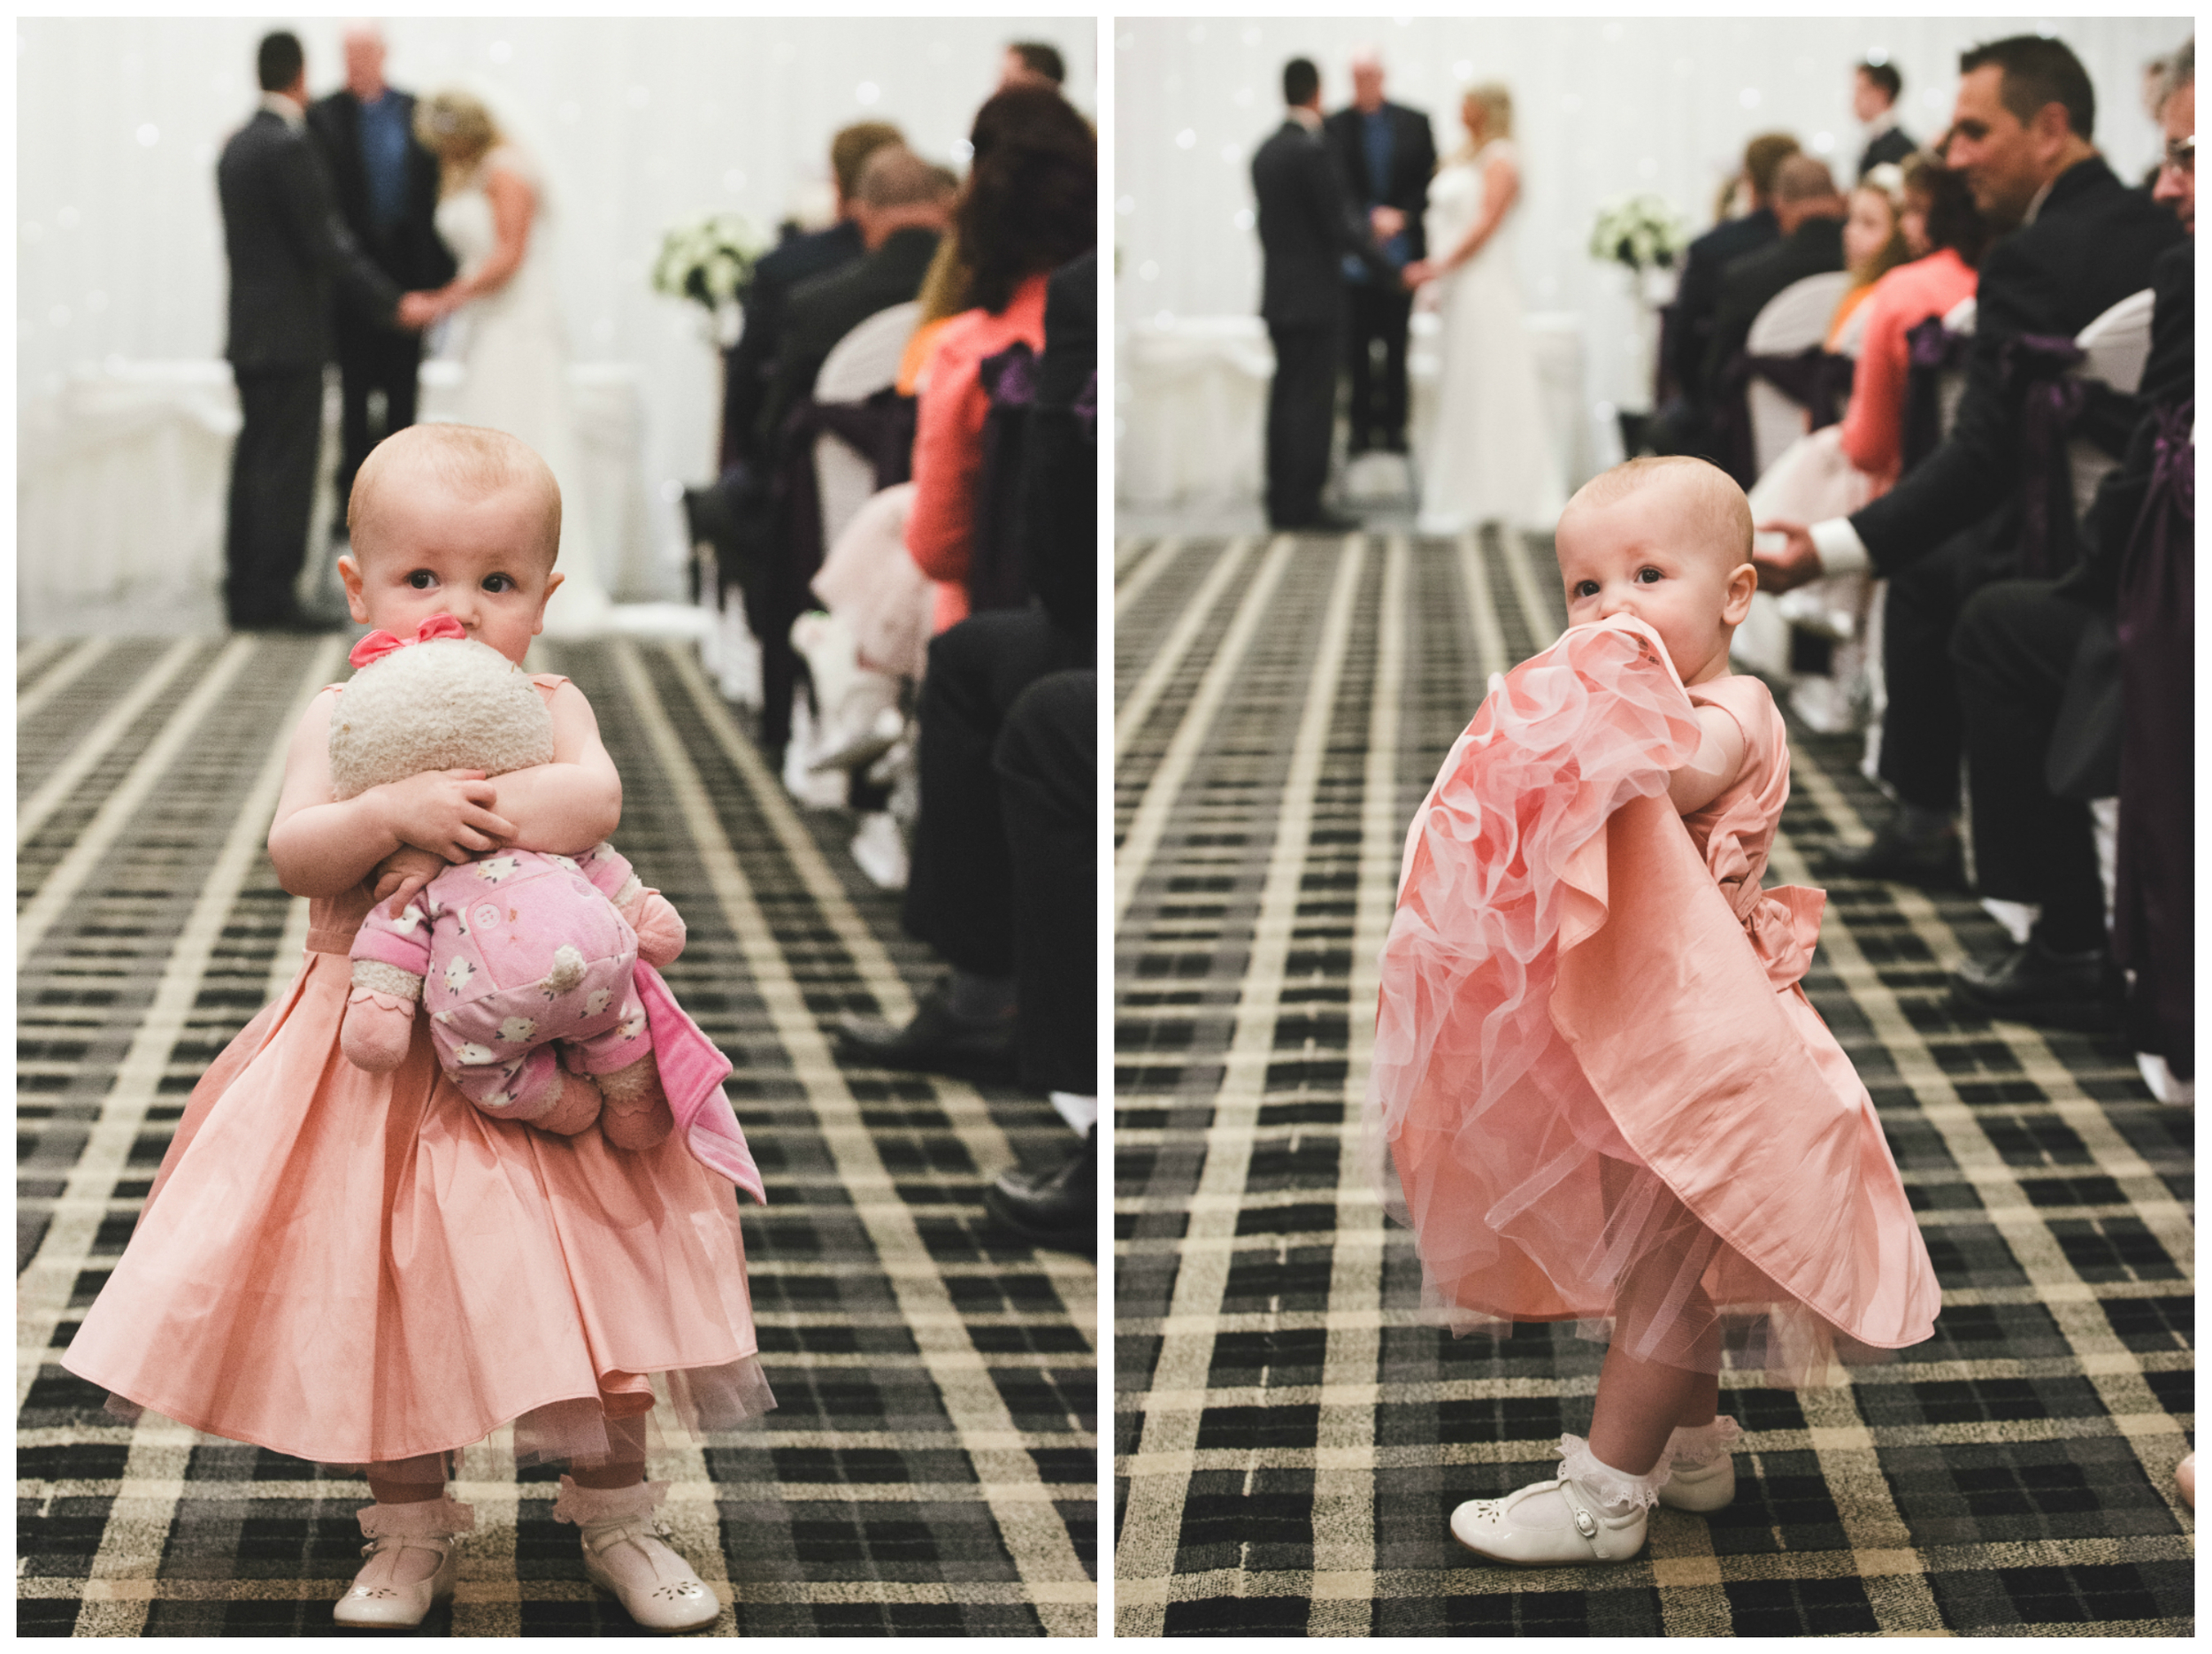 This young wedding guest has to be one of the cutest kids we have shot this year